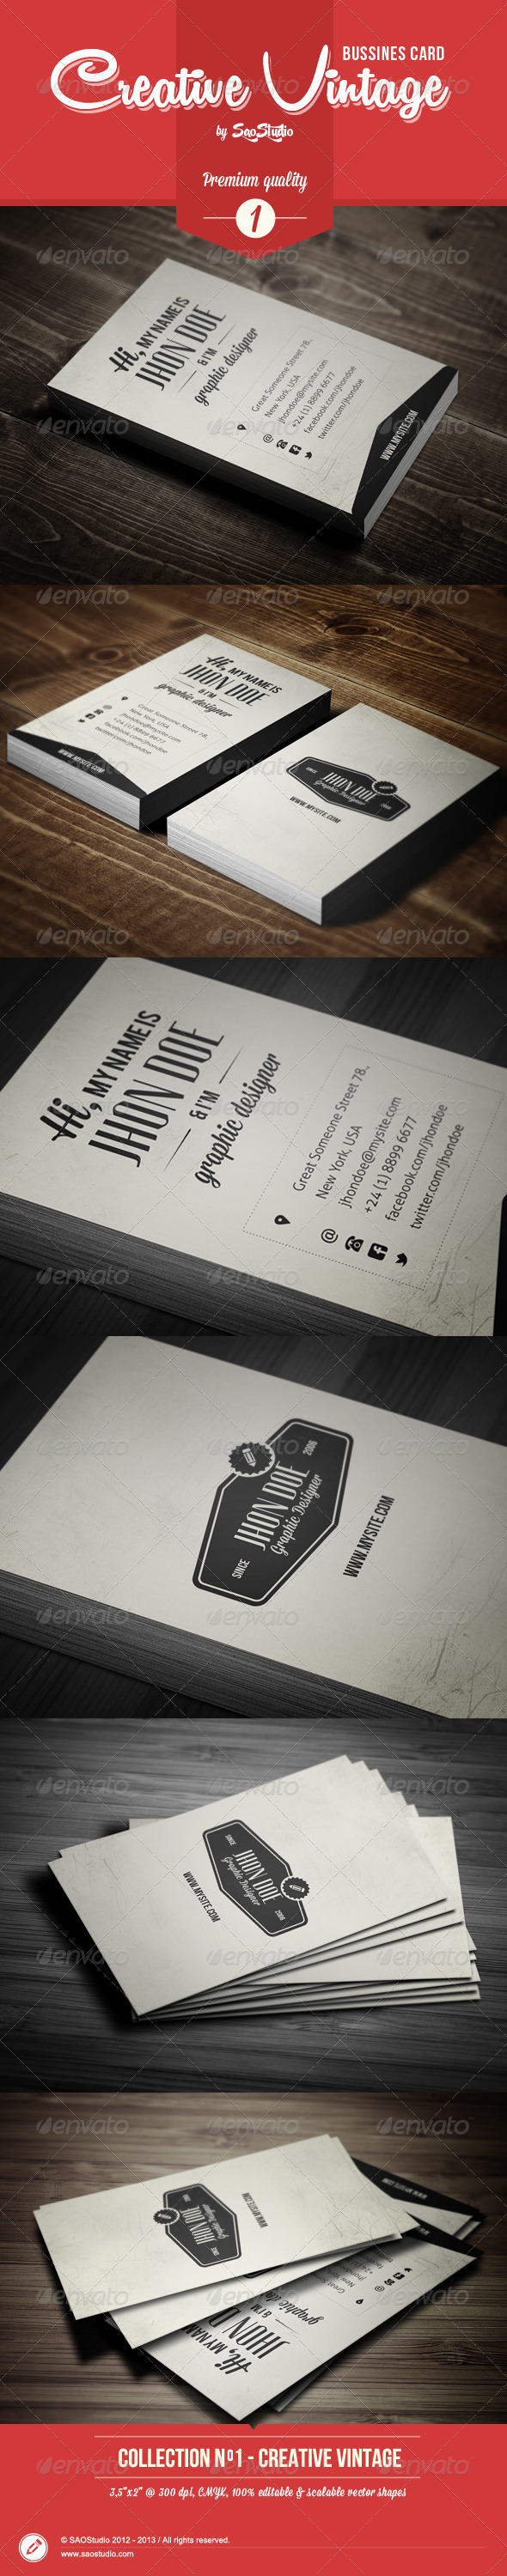 GraphicRiver Premium Creative Vintage Bussines Card 4639838